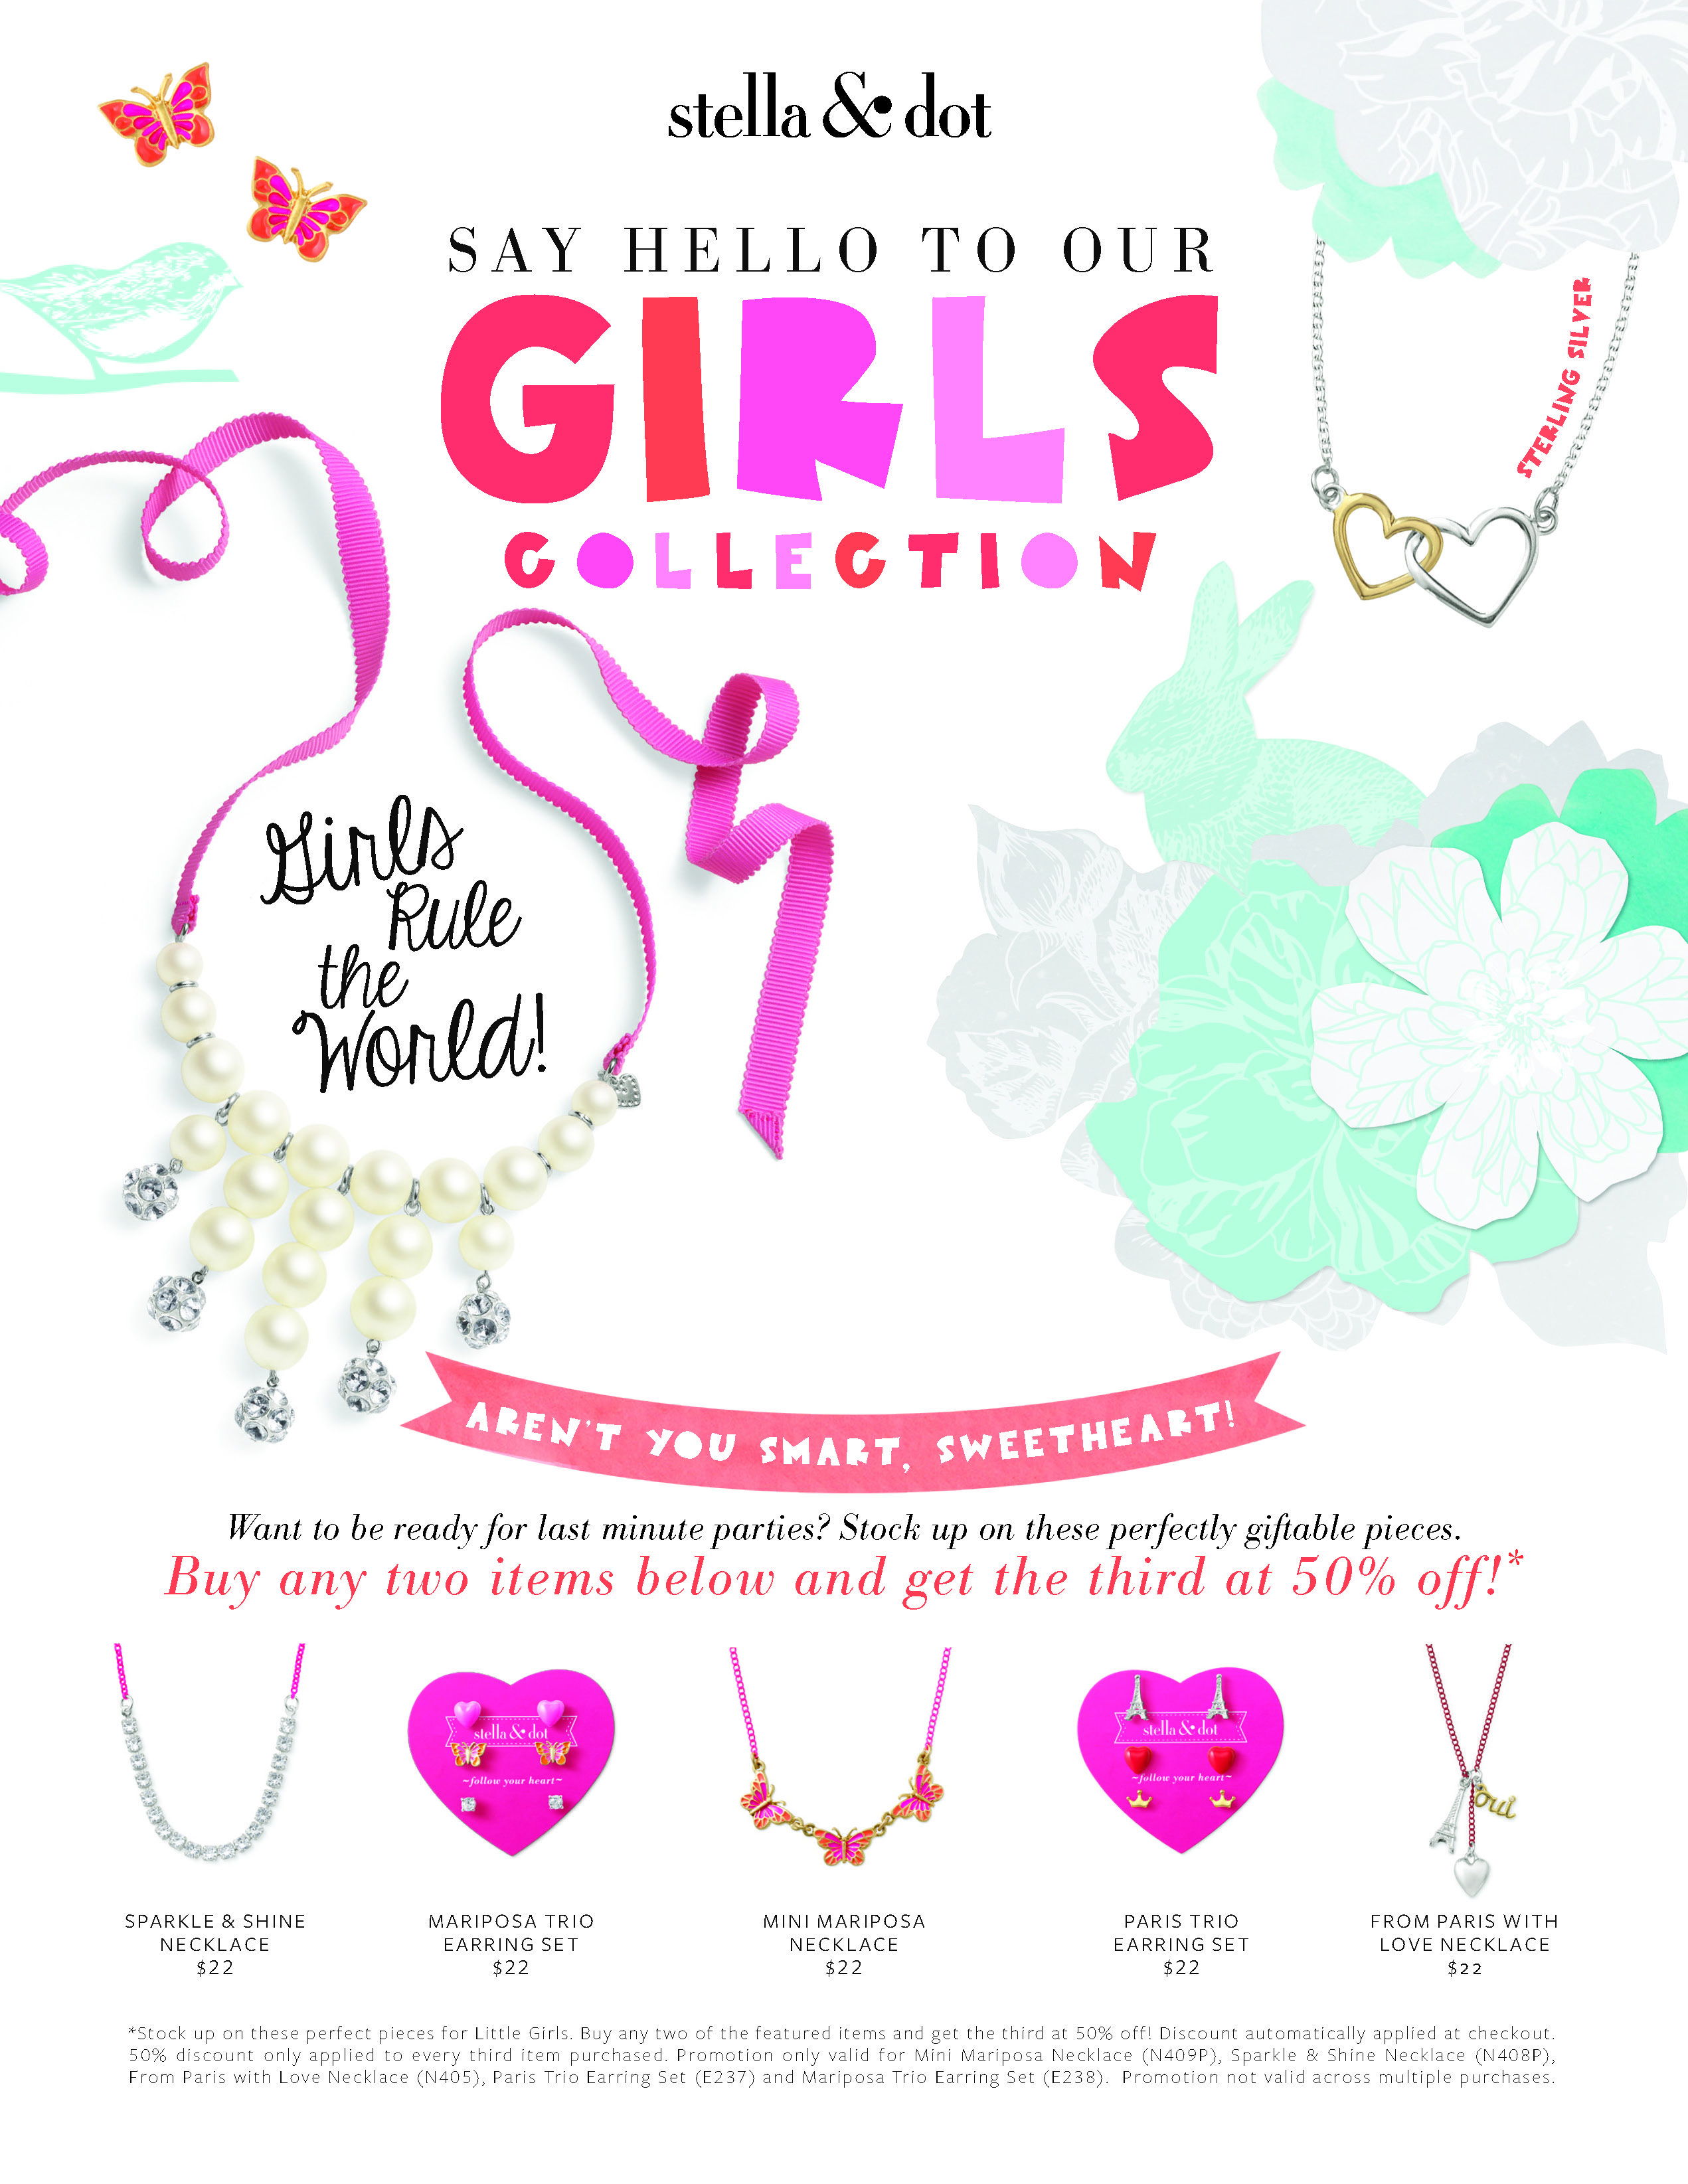 stella dot girls collection includes some buy 2 get 1 50 off